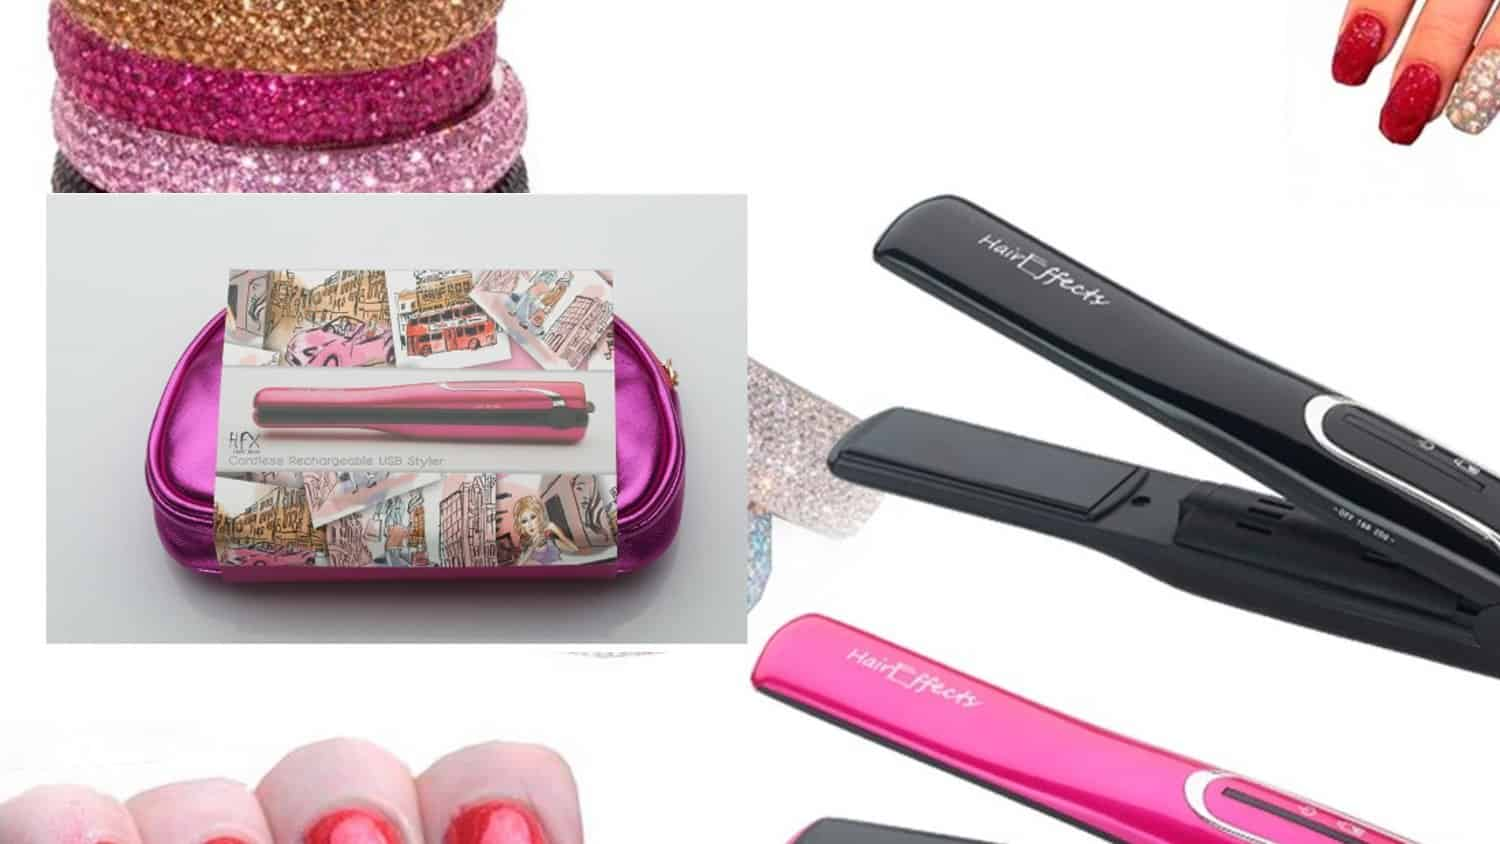 HFX Rechargeable USB Cordless Hair Straightener colours